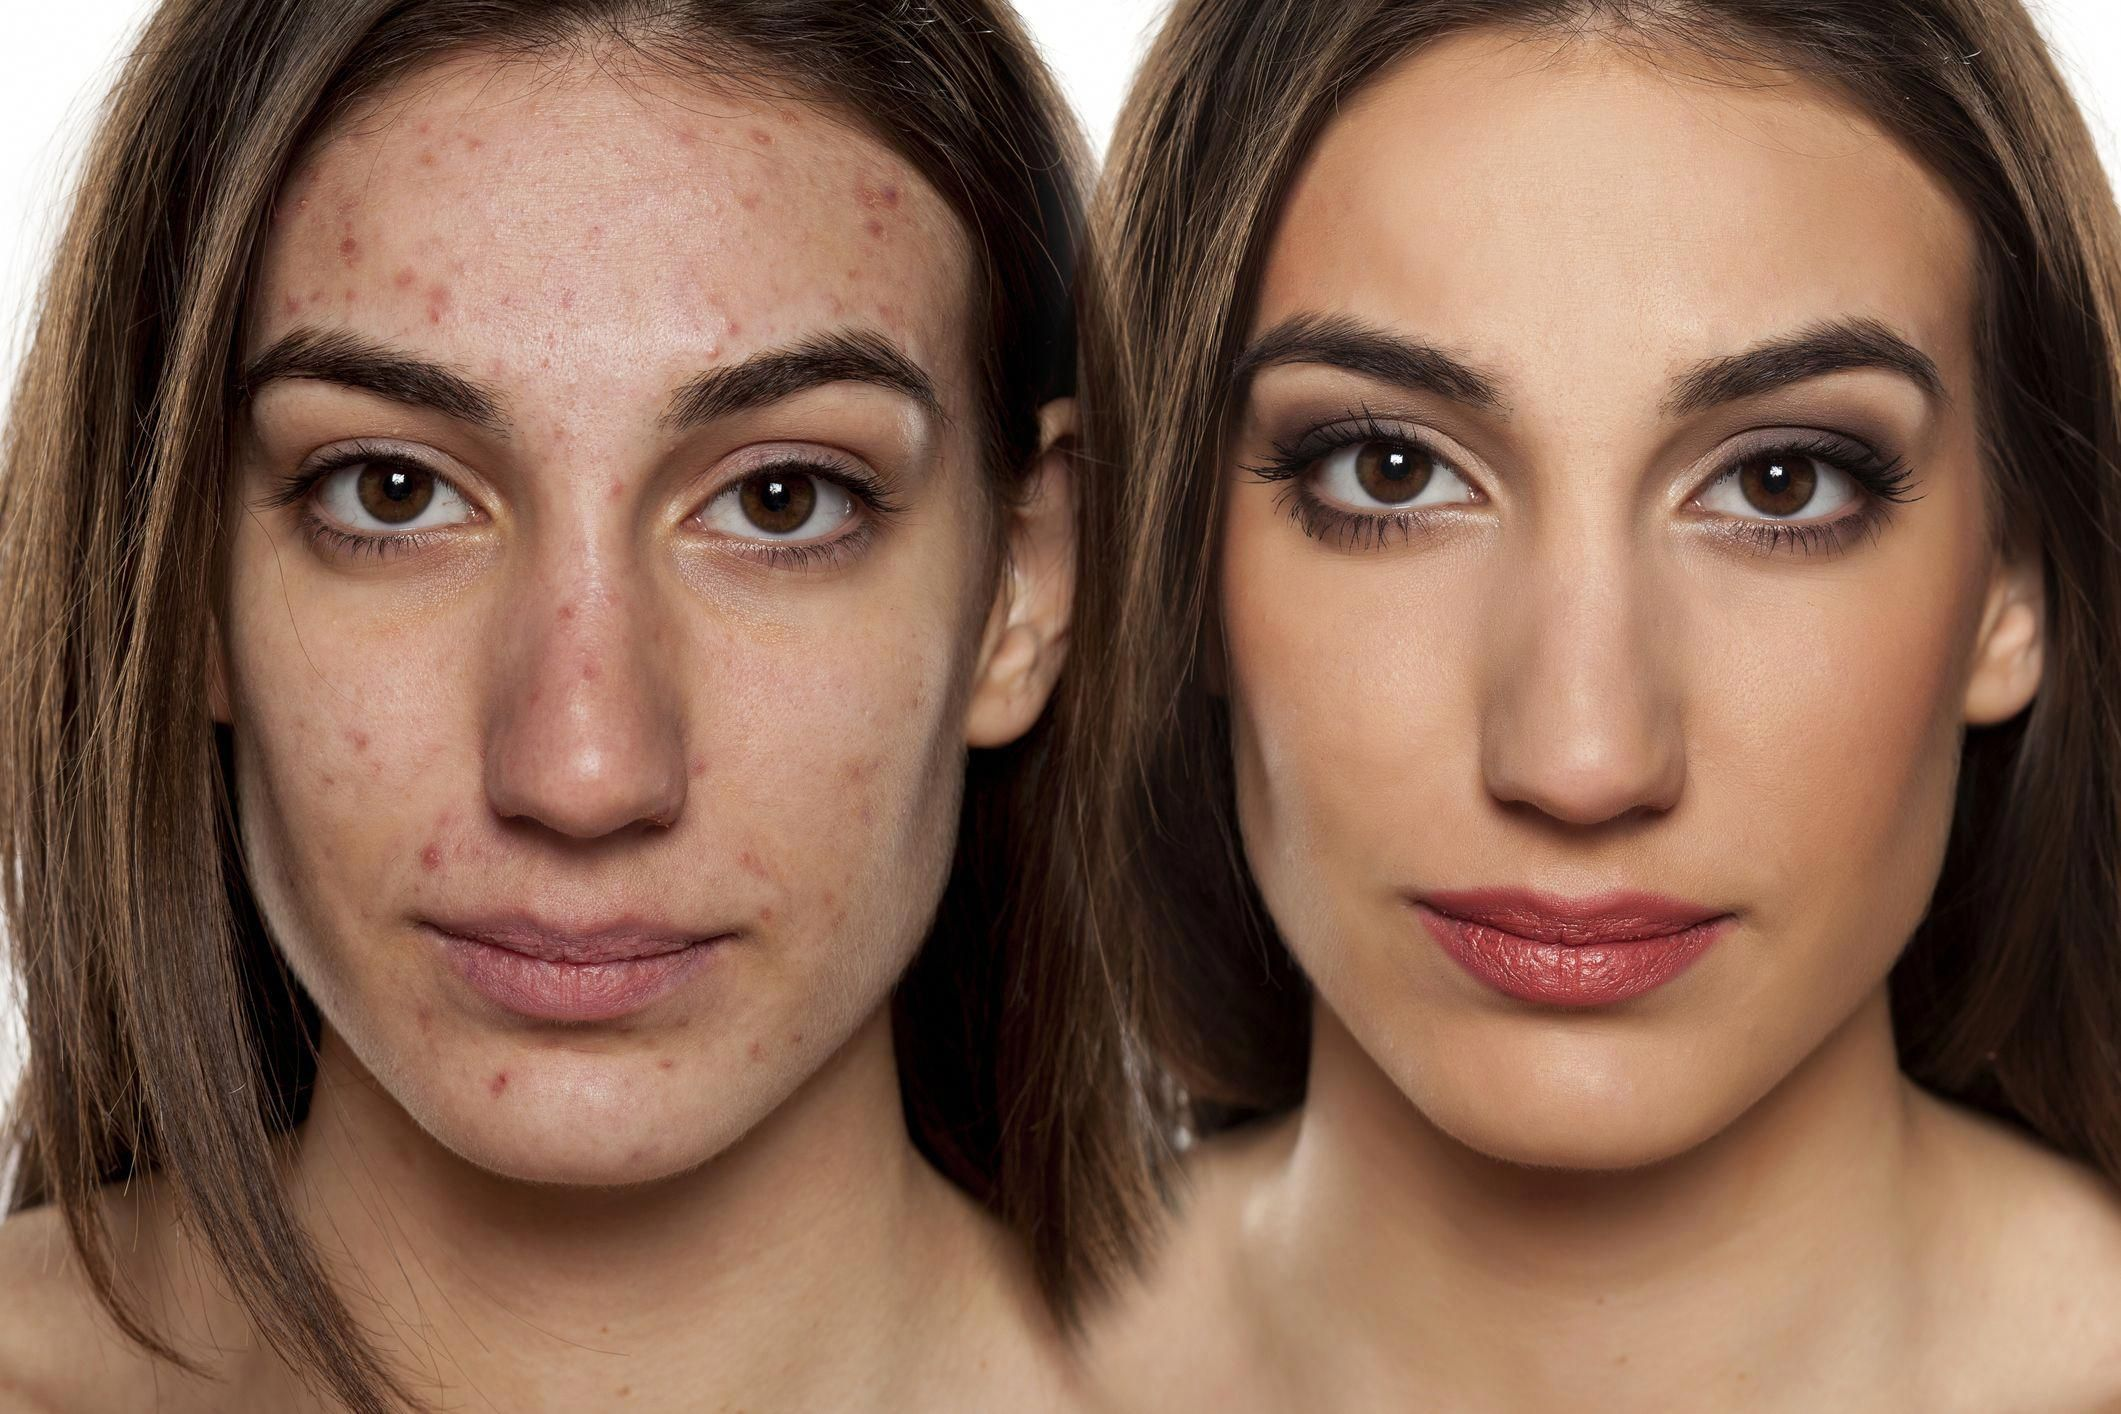 Acne is a skin problem that's so pervasive, it impacts